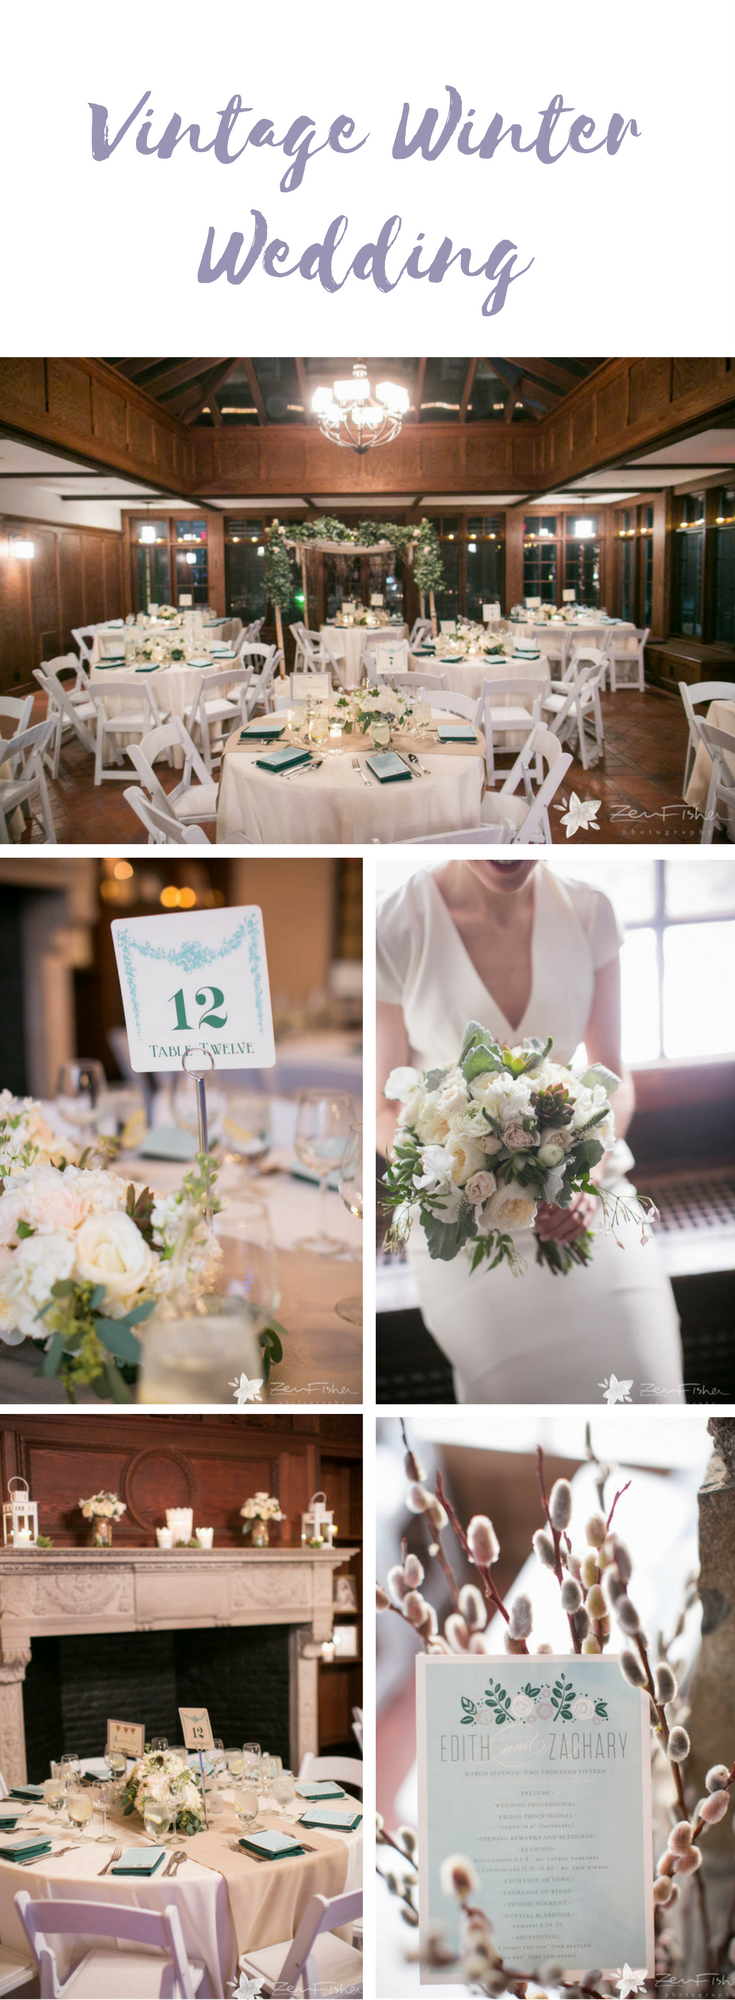 Think White to Capture the Vibe for a Vintage Winter Wedding